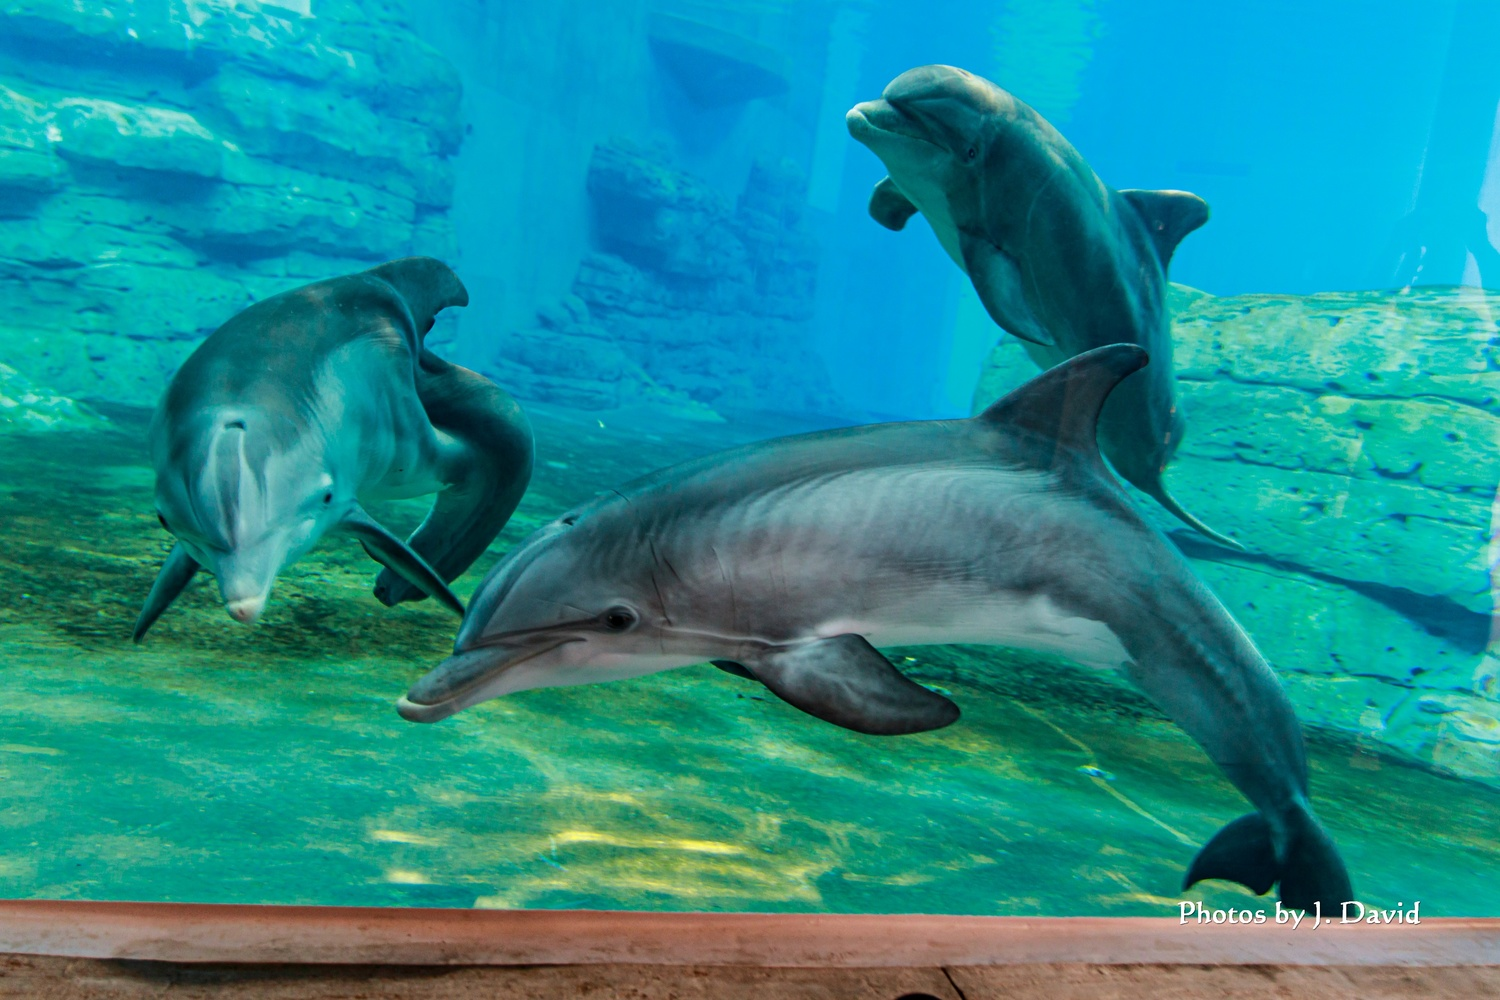 Winter and her friends in their new home by Dave Wright